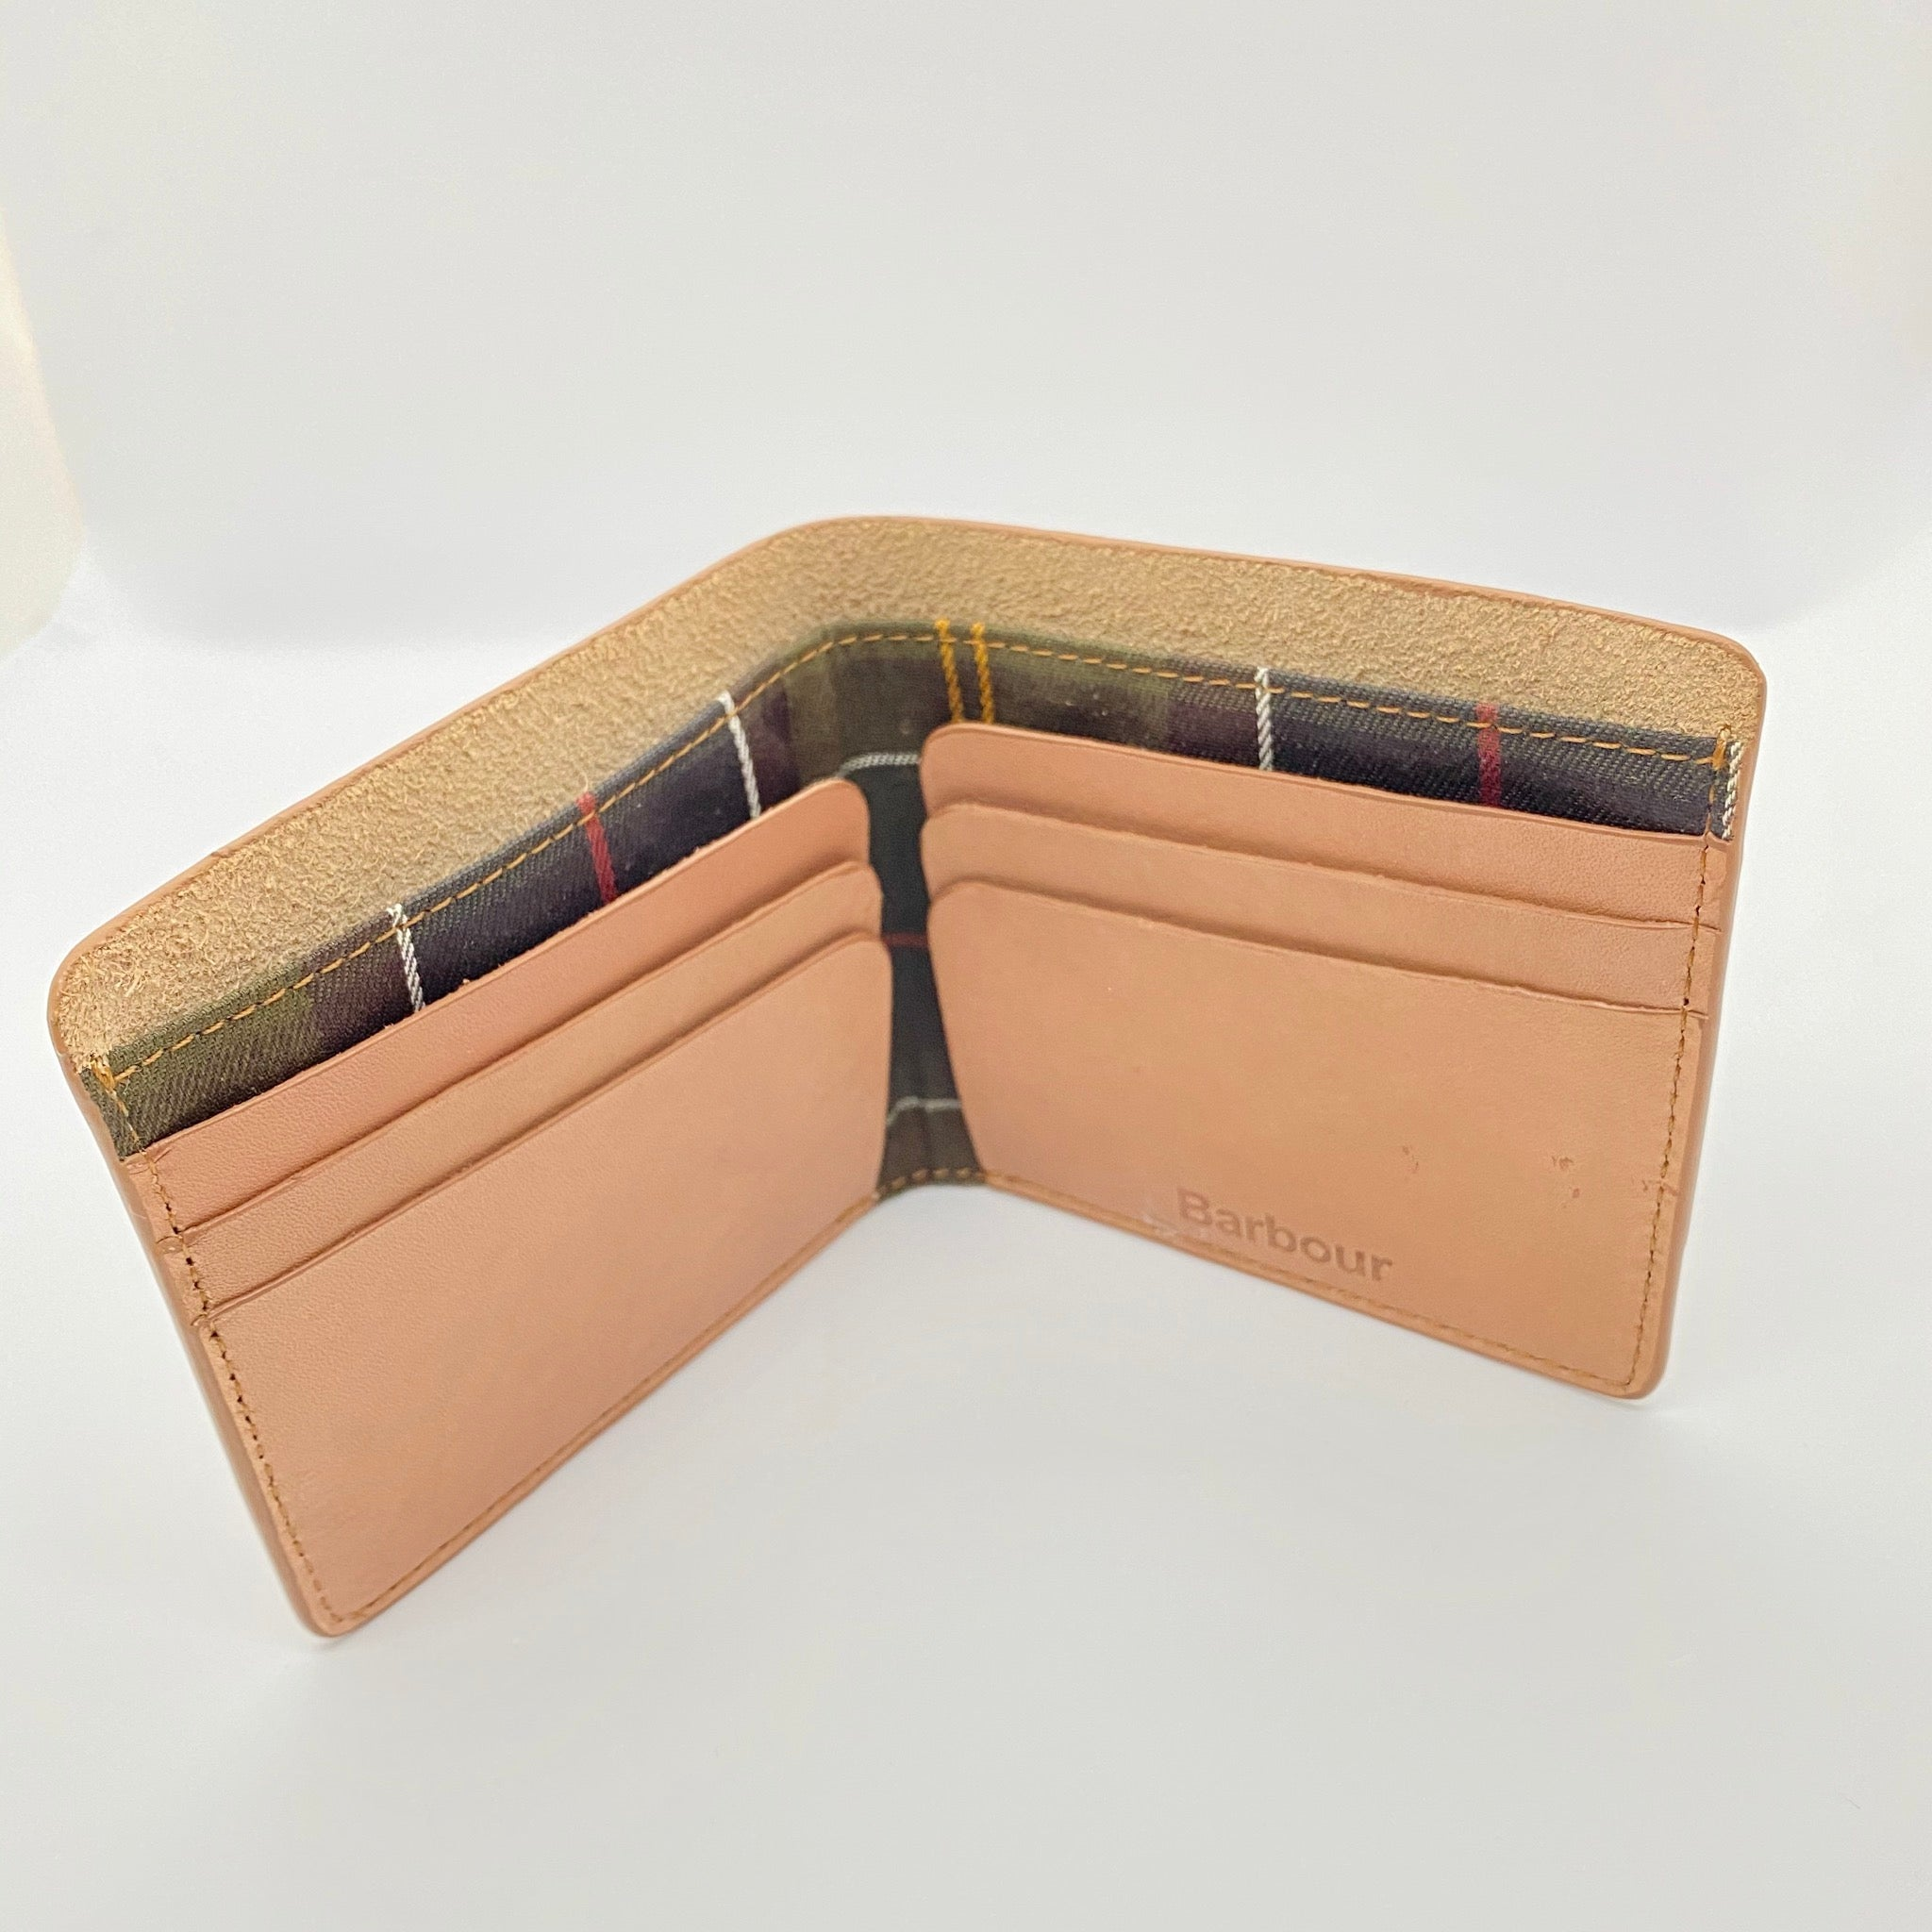 Barbour - Artisan Tan Leather Wallet